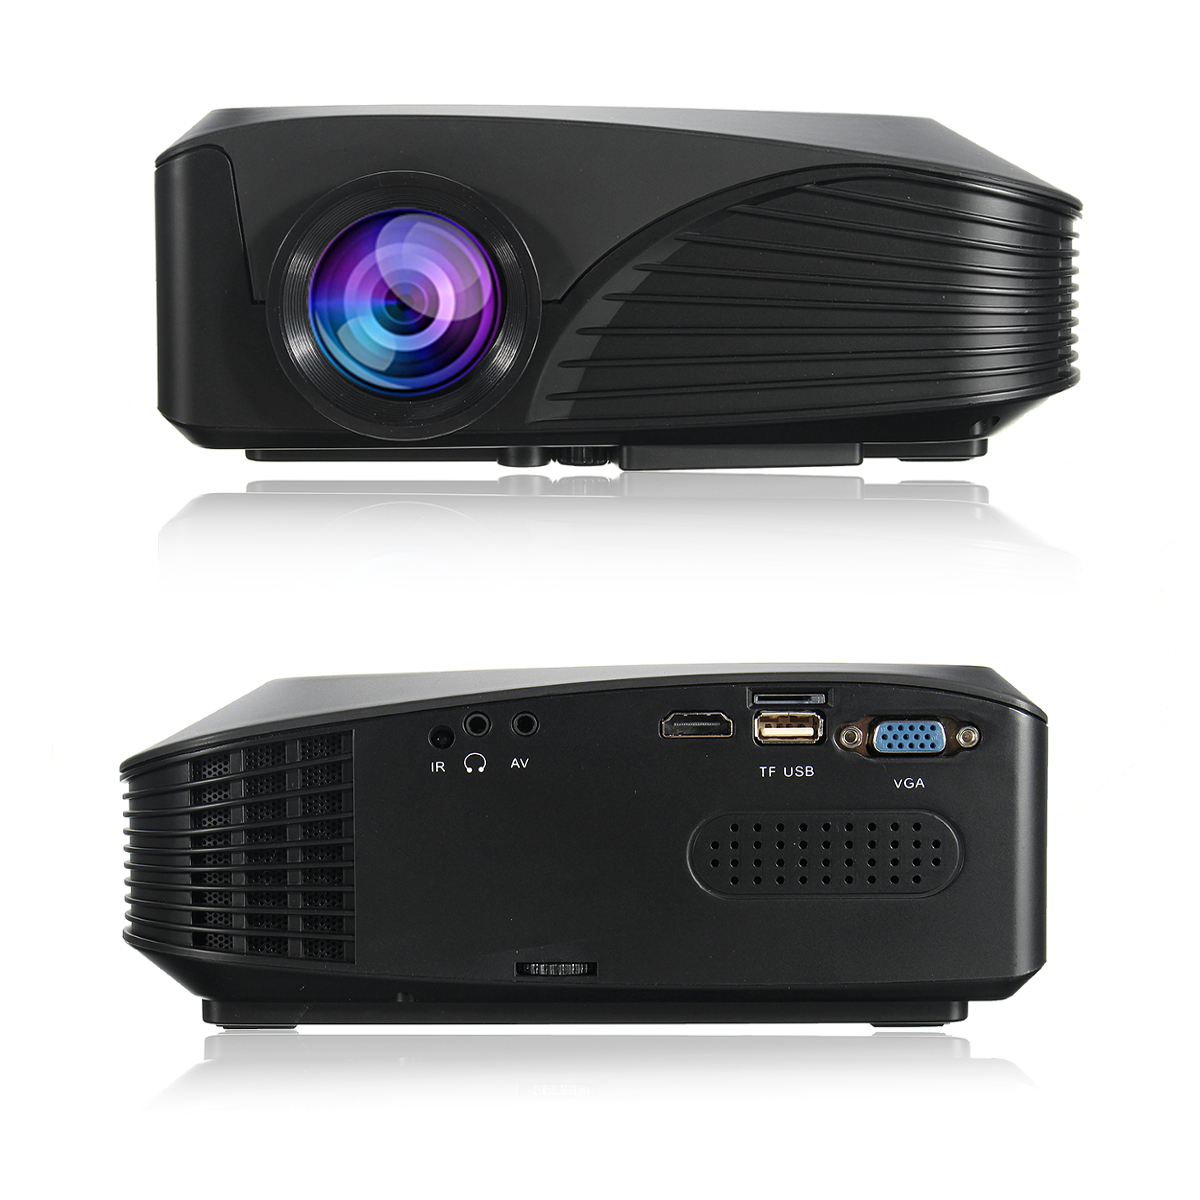 Fuleadture Portable Led Projector 1080p Hd Multimedia: 1080P HD 7000 Lumens 3D LED Projector Multimedia Cinema